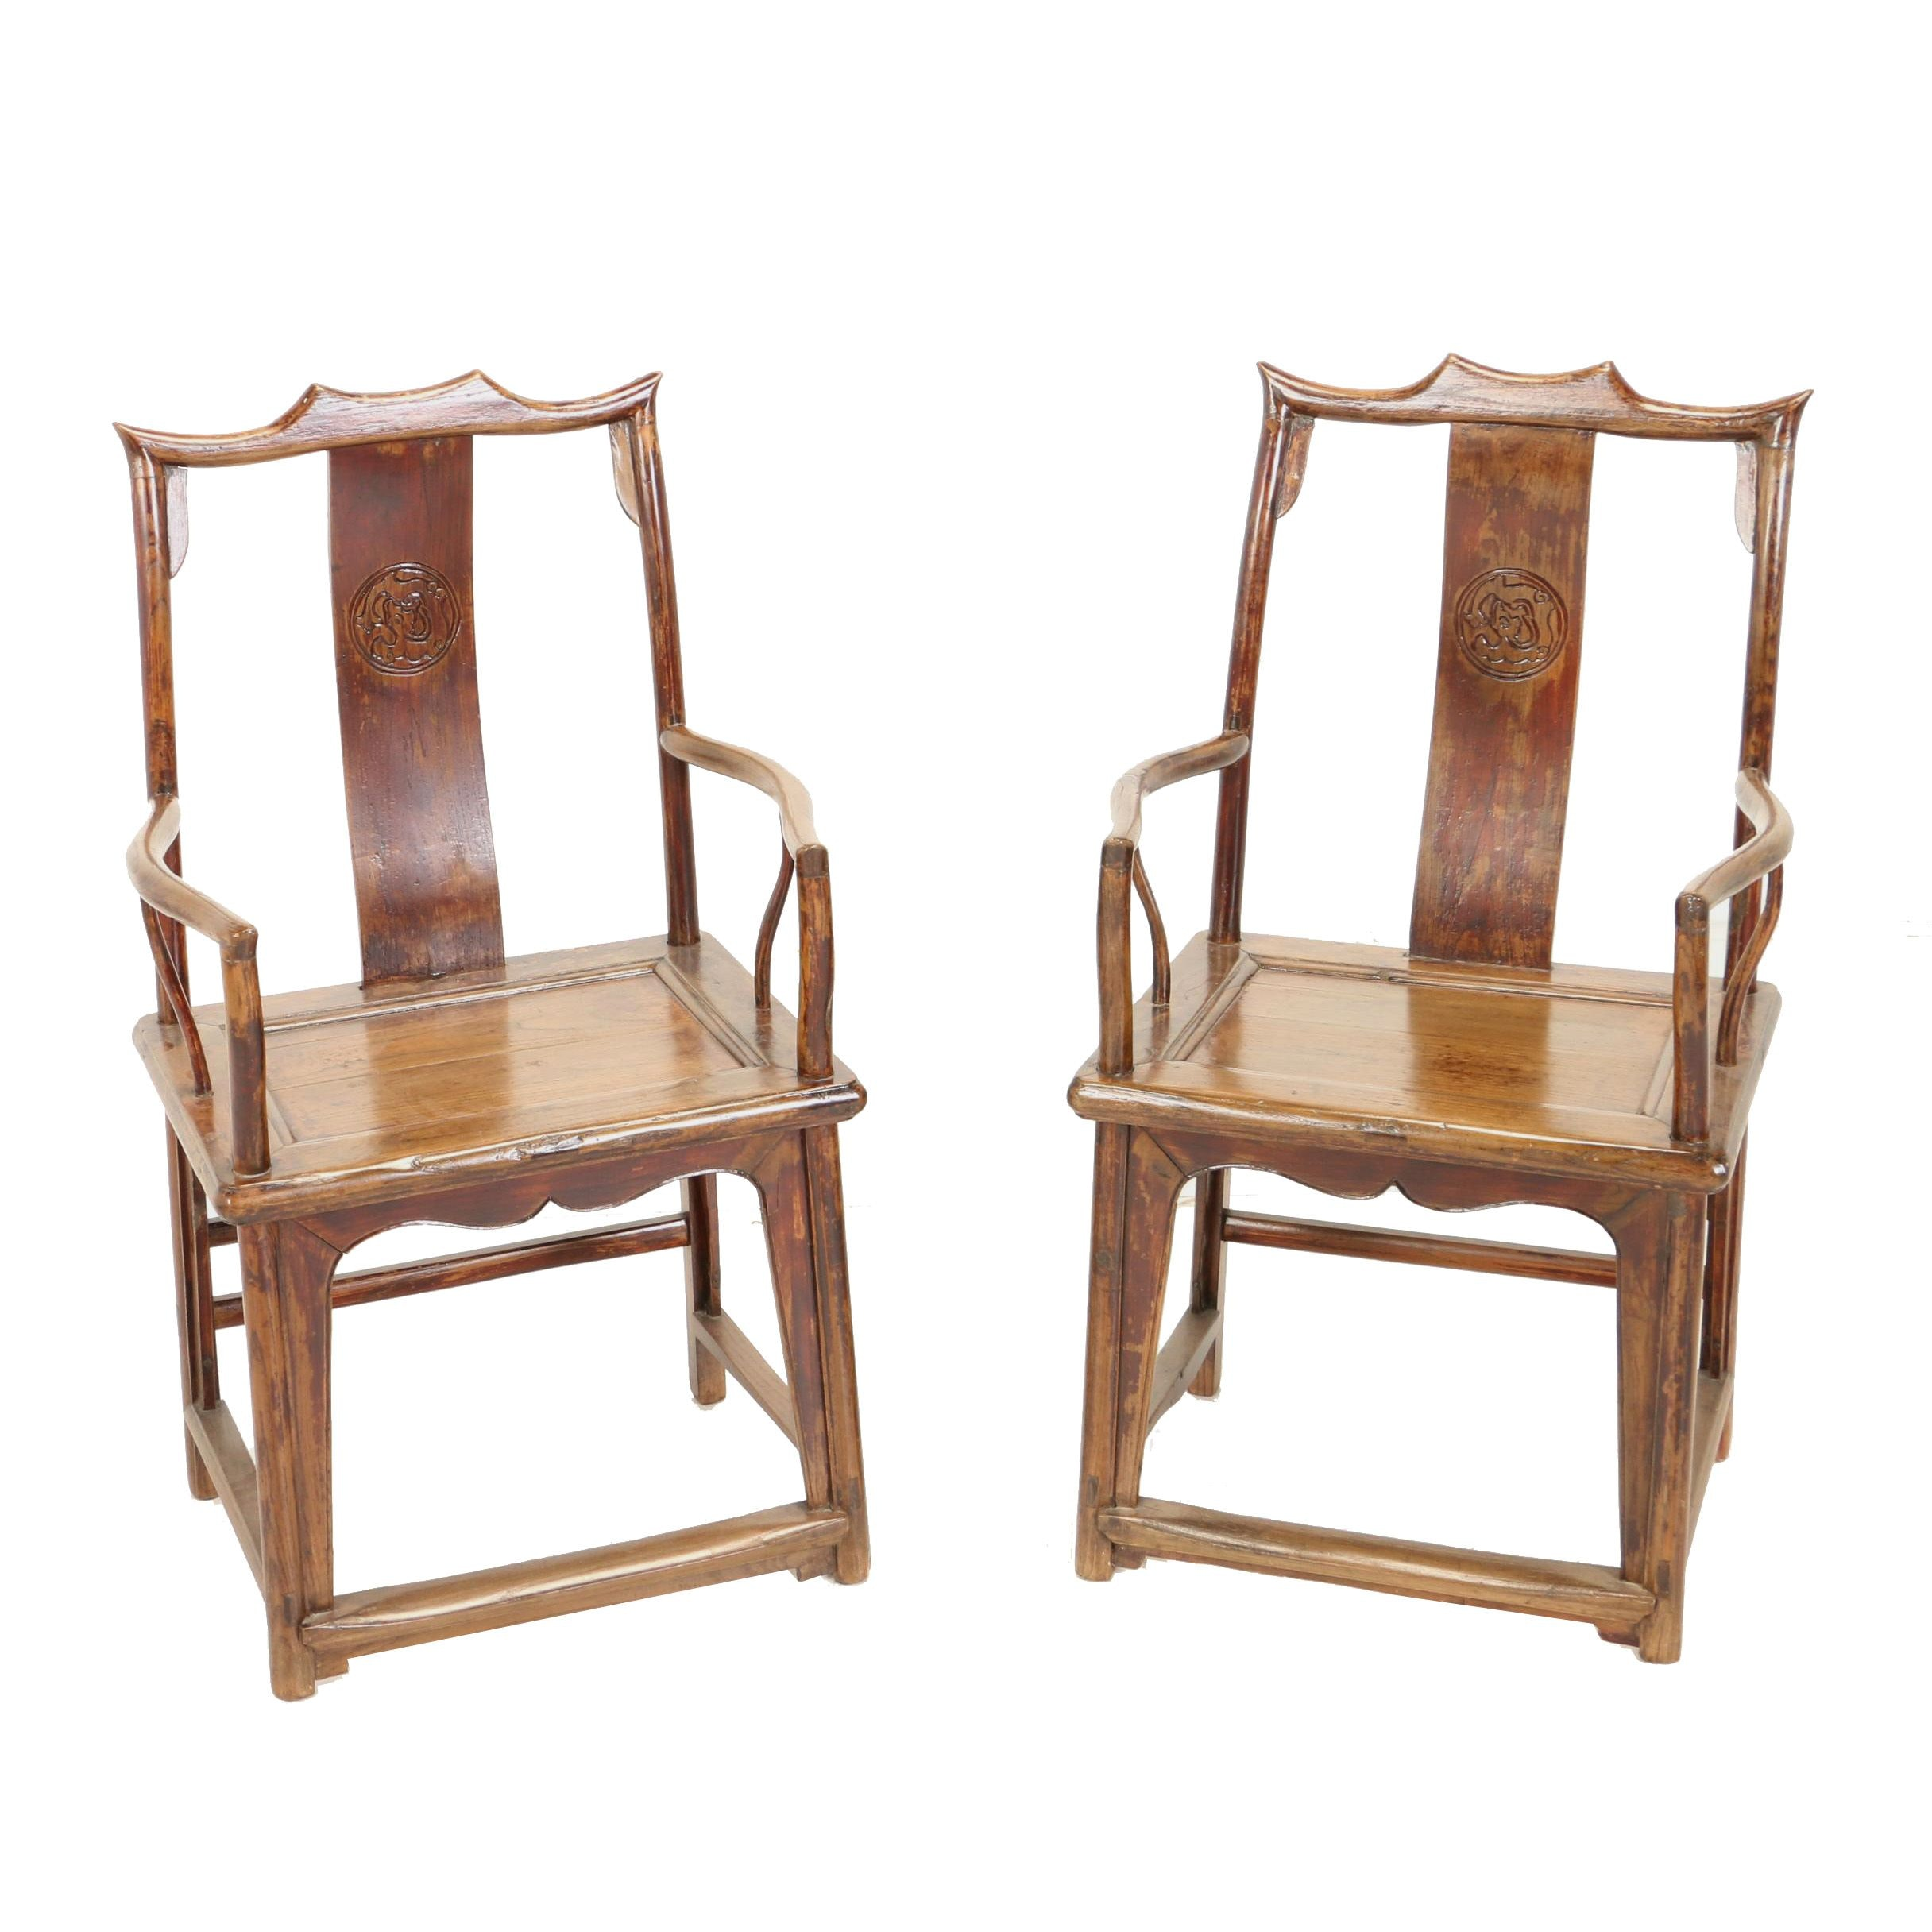 Pair of Qing Dynasty Elm Yokeback Armchairs, Late 19th/Early 20th Century